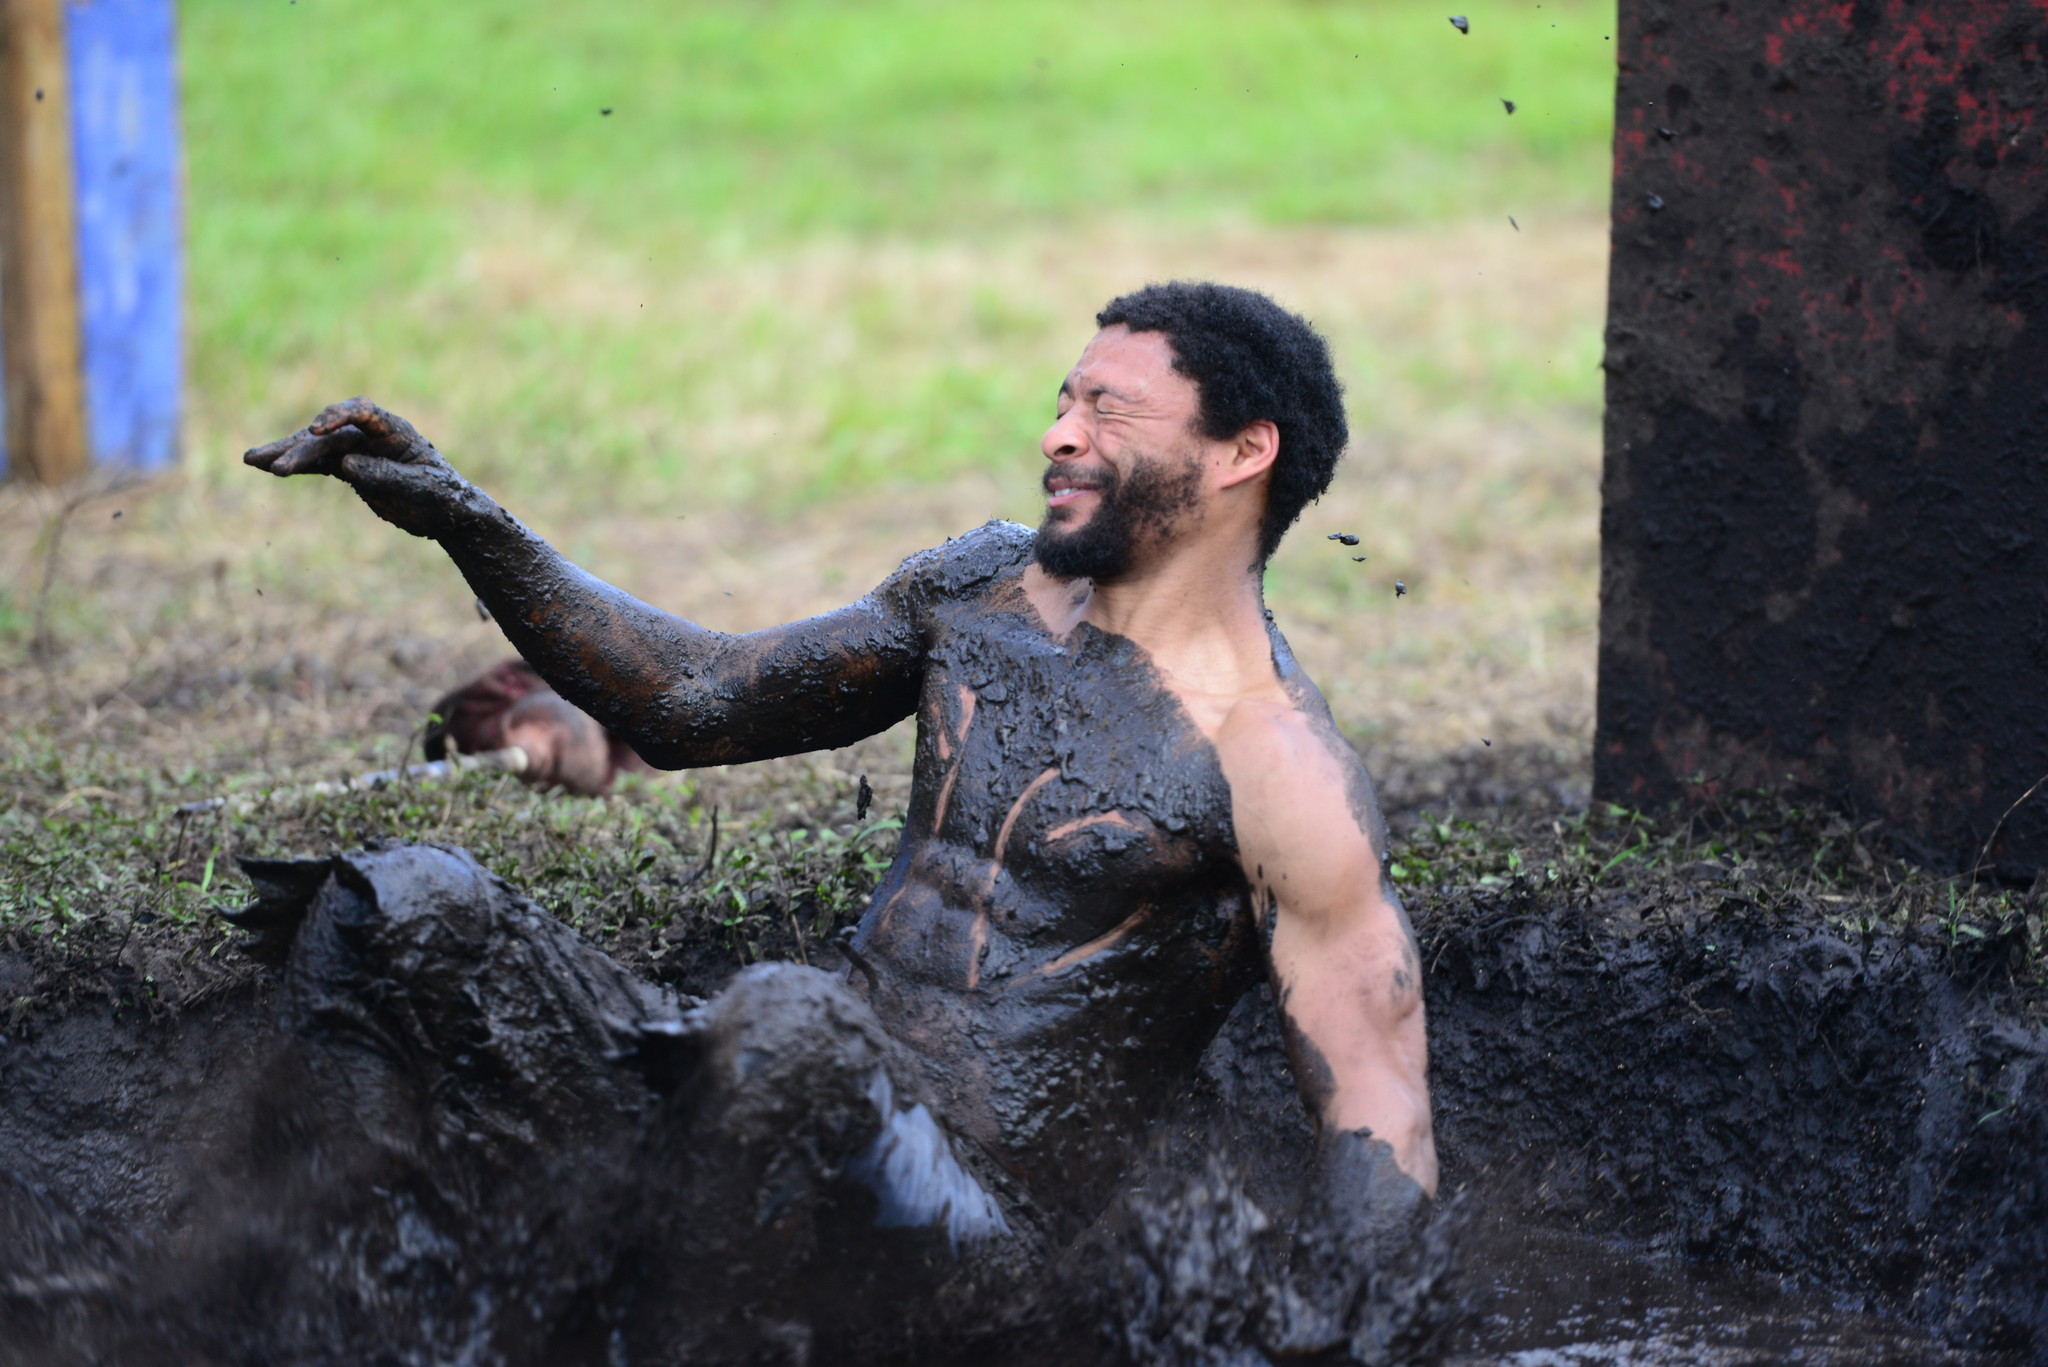 Renaissance Festival photos - Mud